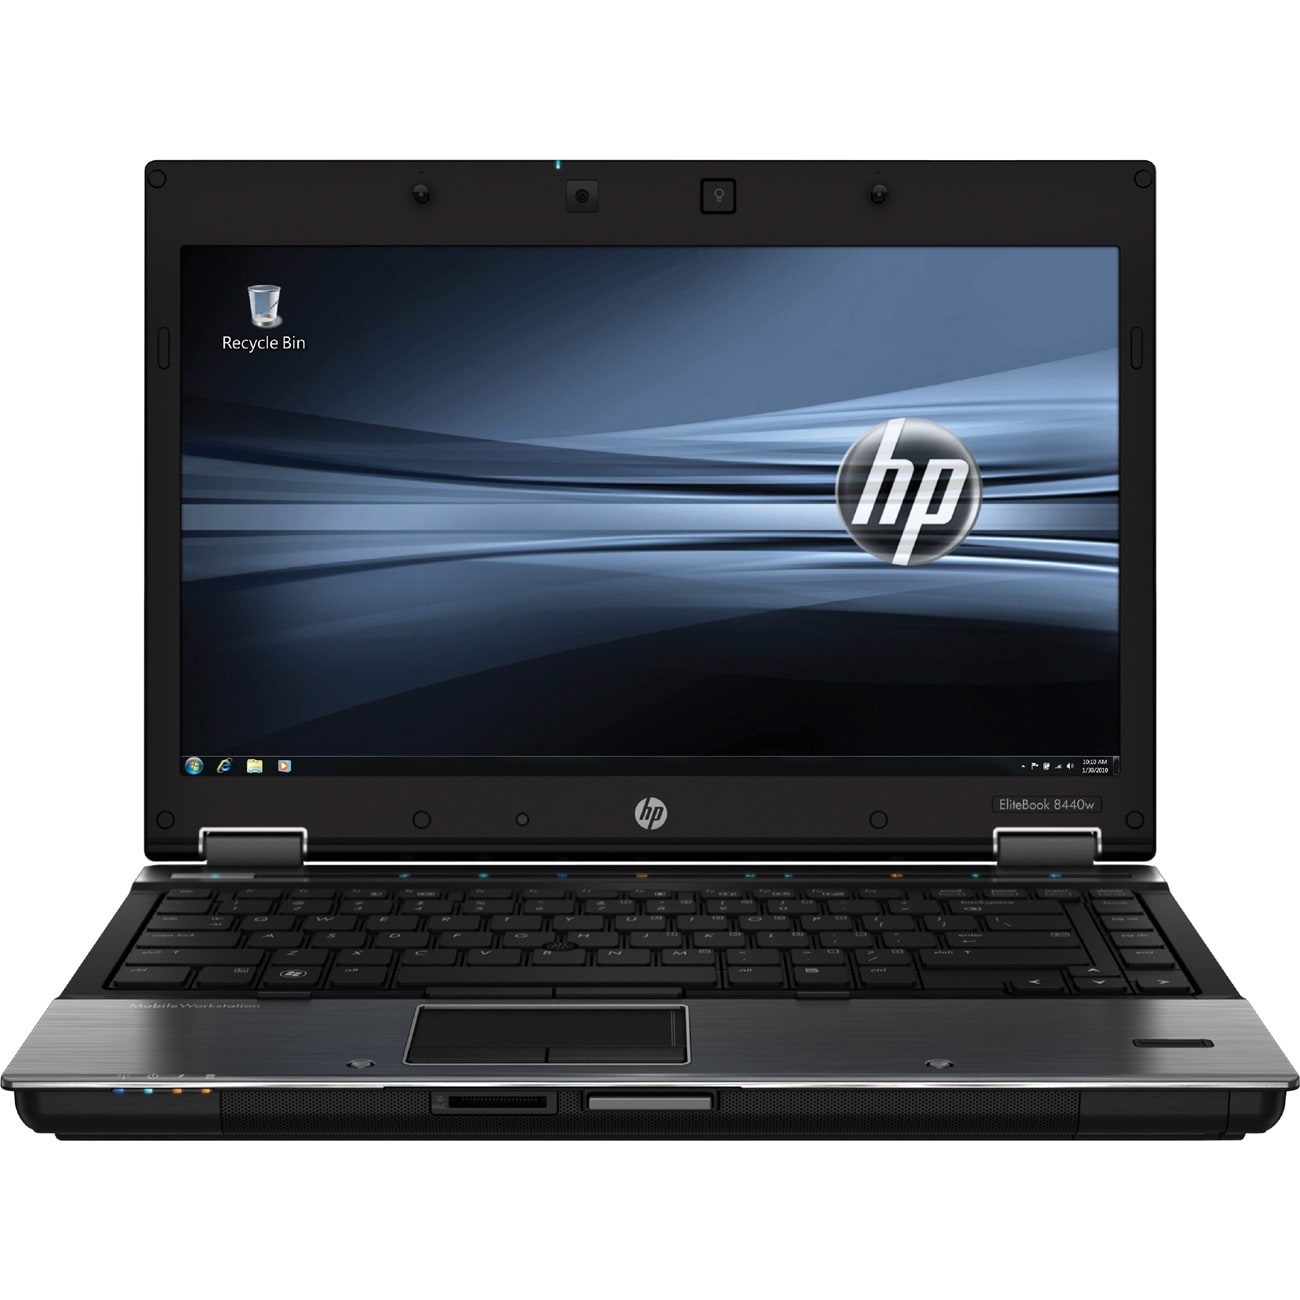 "HP EliteBook 8440w 14"" LCD Mobile Workstation - Intel Core i7 (1st Ge"